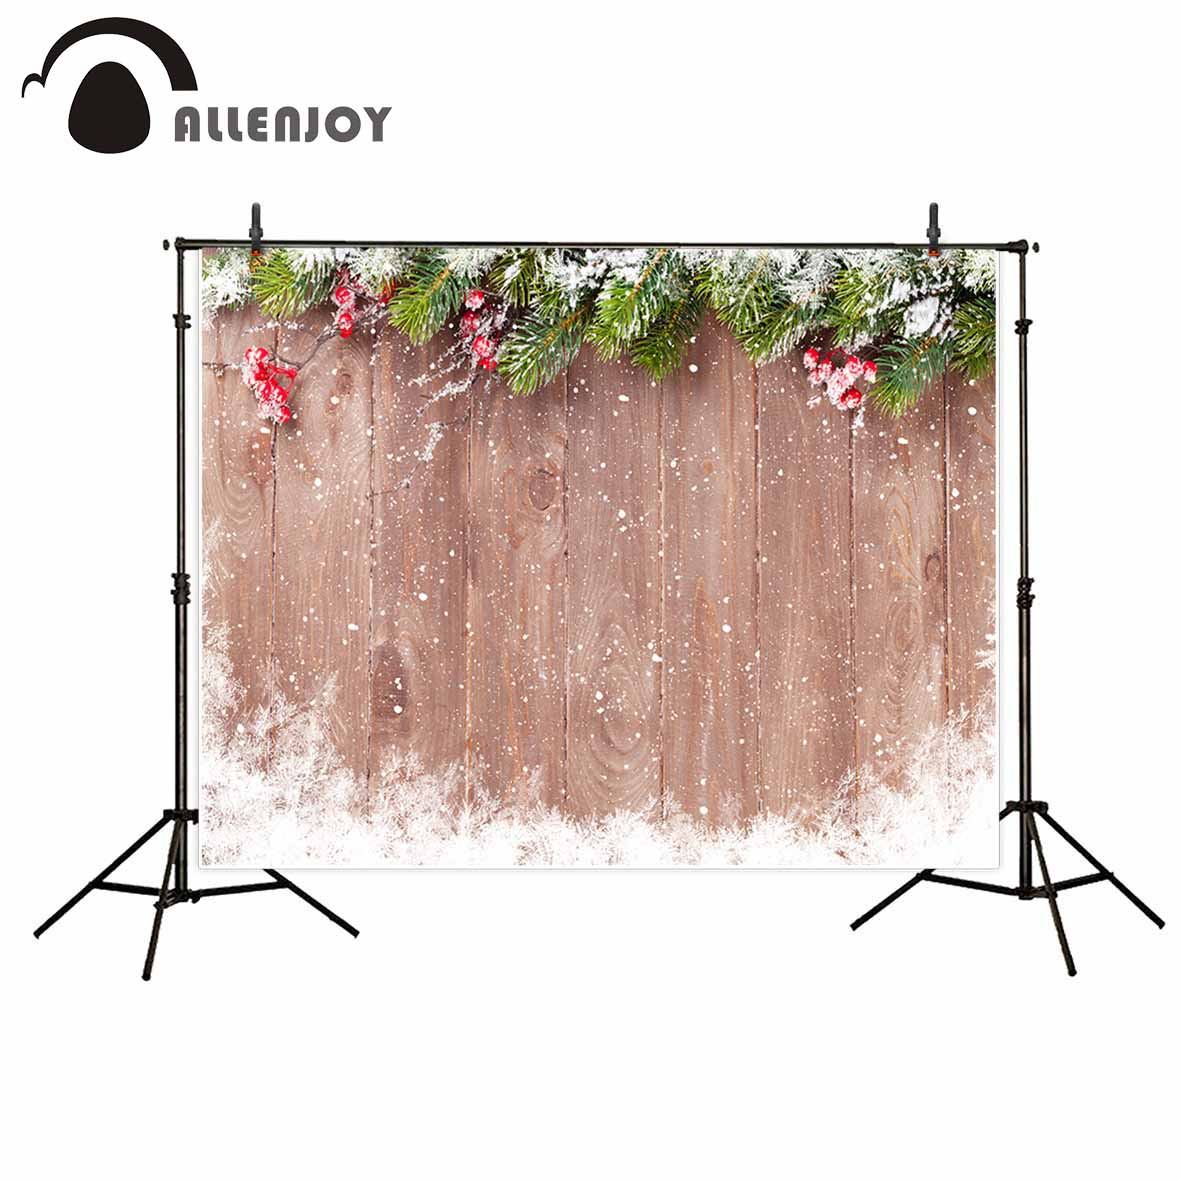 Allenjoy Christmas backdrop Wooden background snowflake pine branches red fruit photography backdrops christmas decoration vinyl